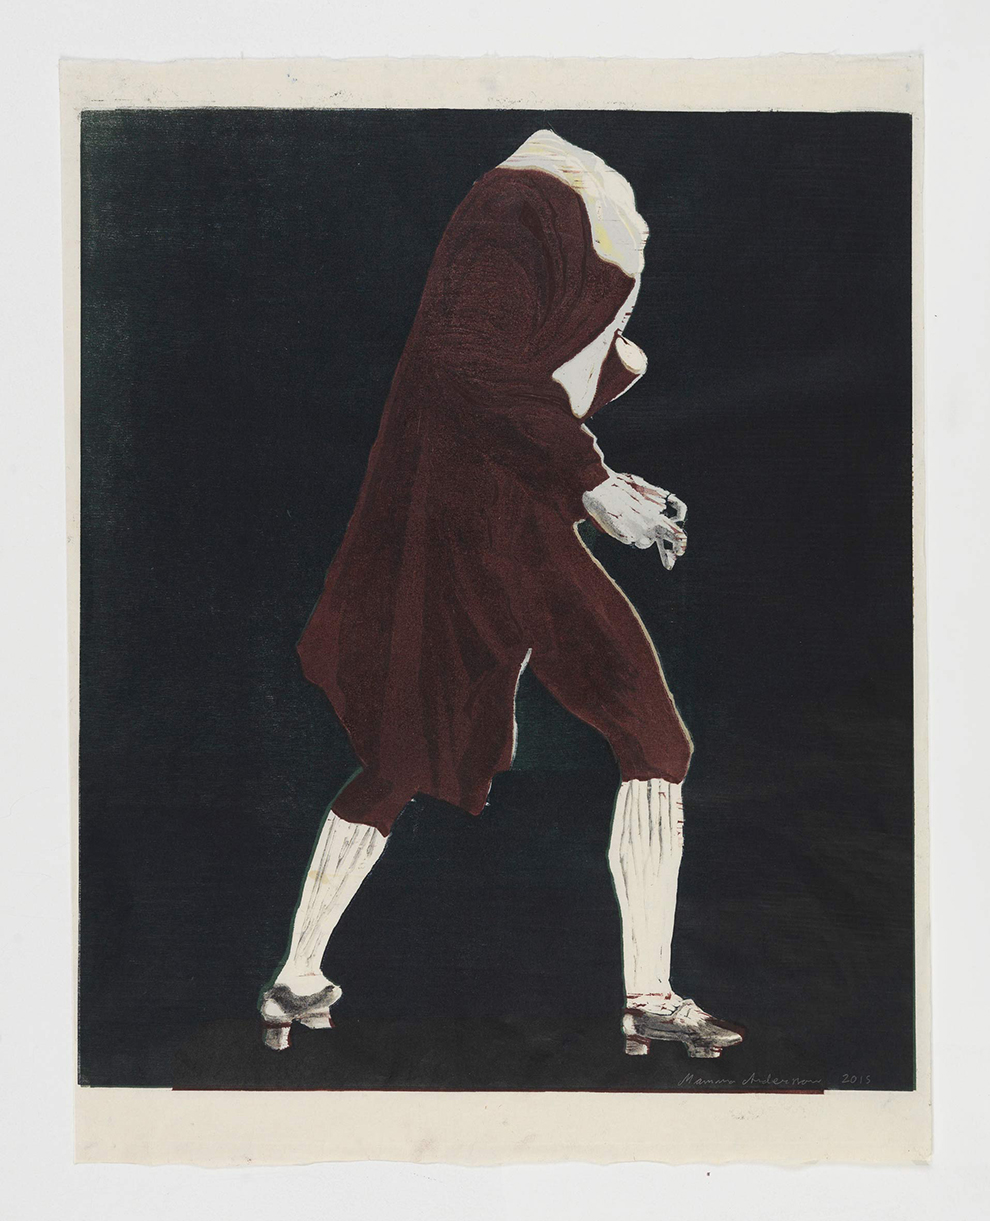 Mamma Andersson,  Headless Man in Jacket , 2015, hand printed colour woodcut on rice paper, monotype,65 x 50cm